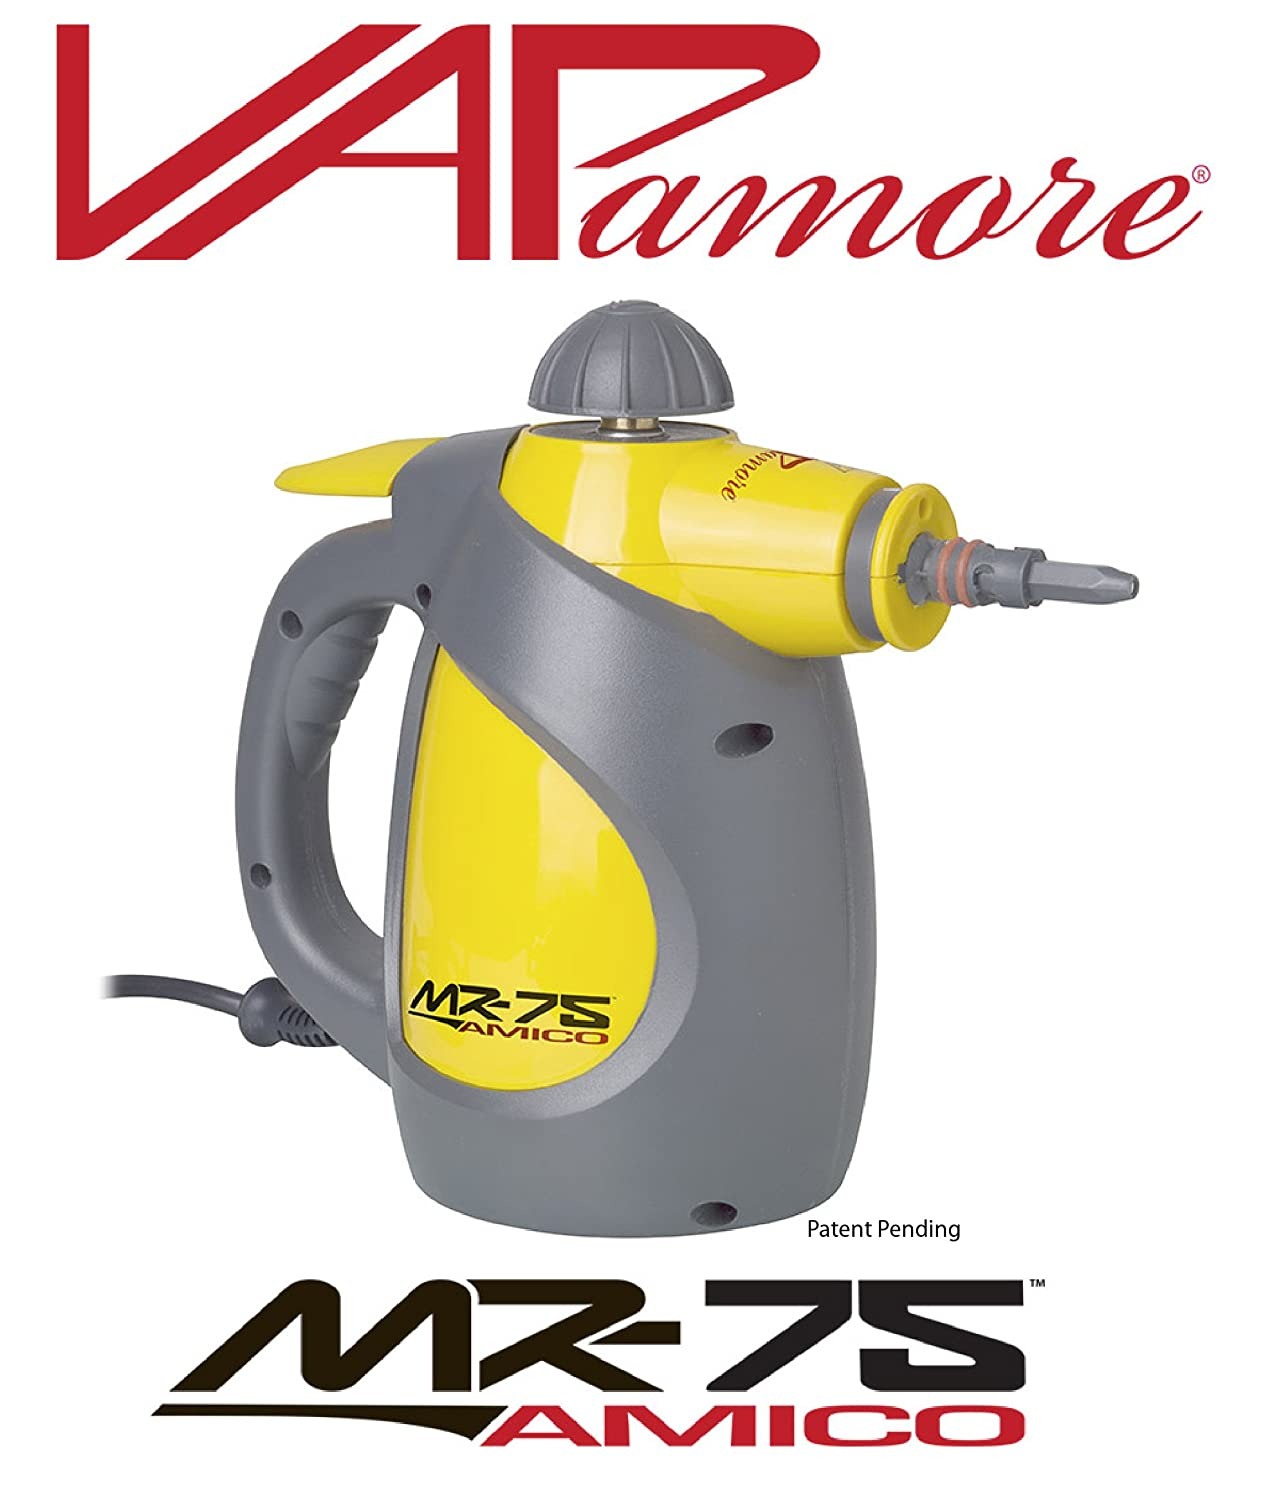 Vapamore MR-75 Amico Hand Held Steam Cleaner With Lifetime Warranty at Sears.com